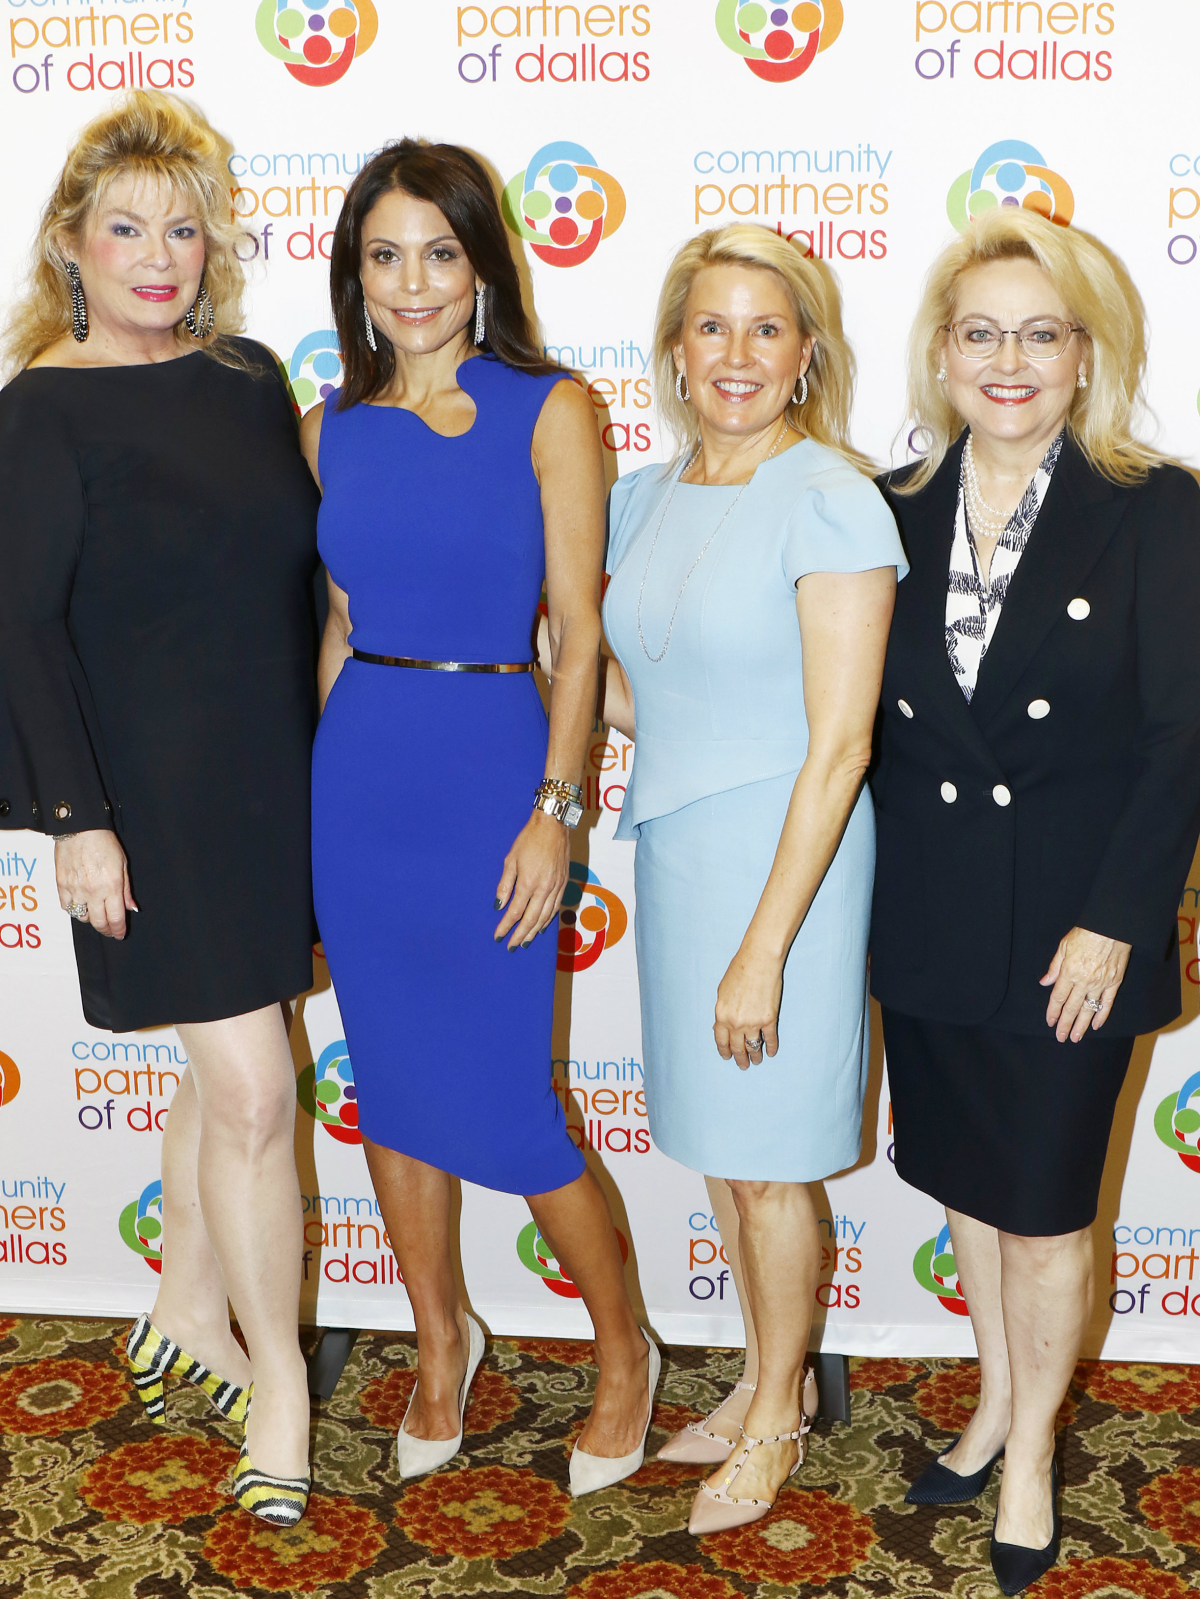 Gail Corder Fischer, honorary chair, Bethenny Frankel, featured speaker, Mary Martha Pickens, Chick Lit Luncheon co-chair and Tricia George, Chick Lit Luncheon co-chair